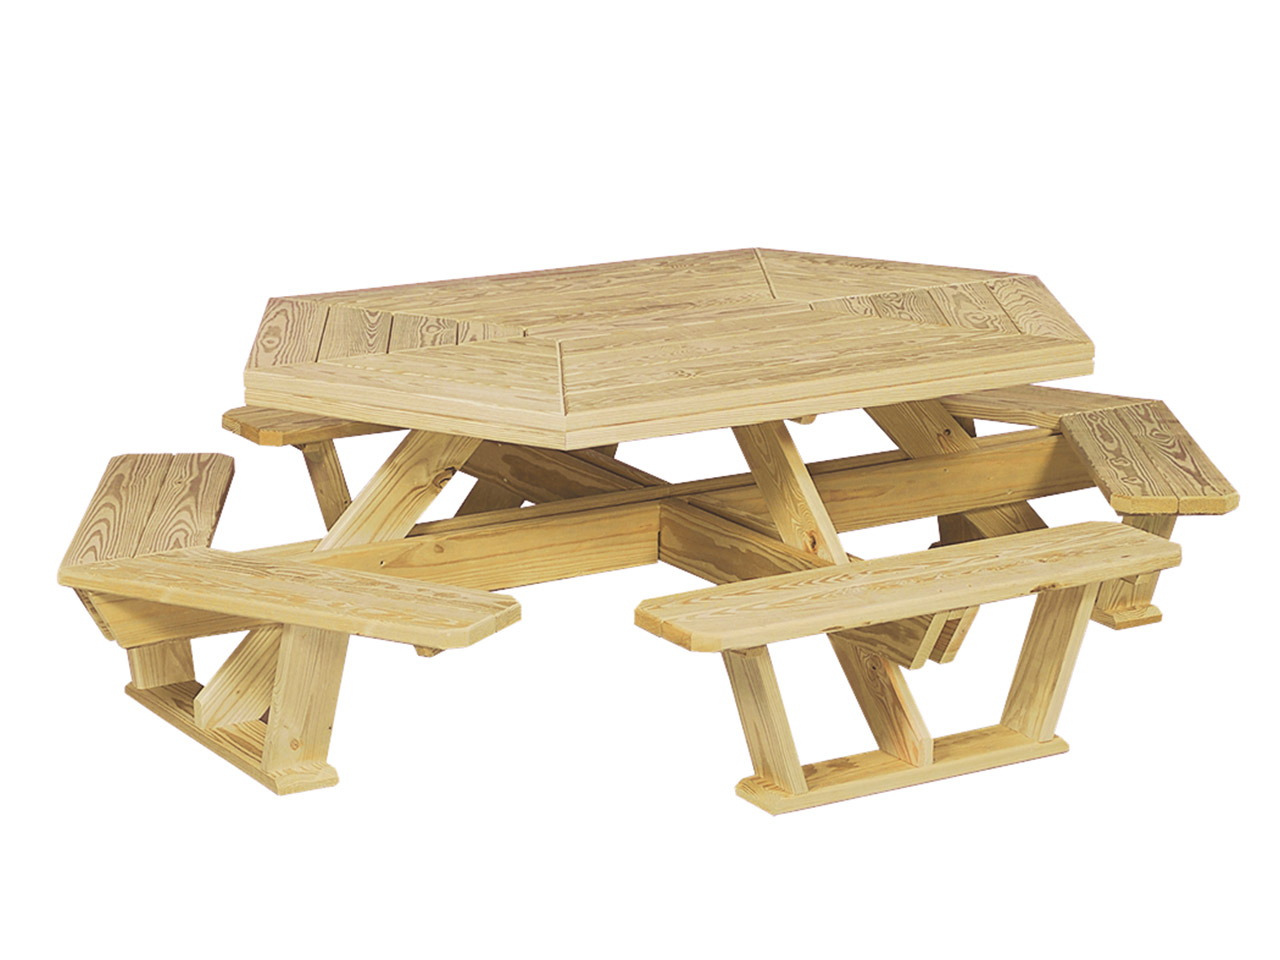 westmount pub living click garden table picnic rwn pressure treated bench